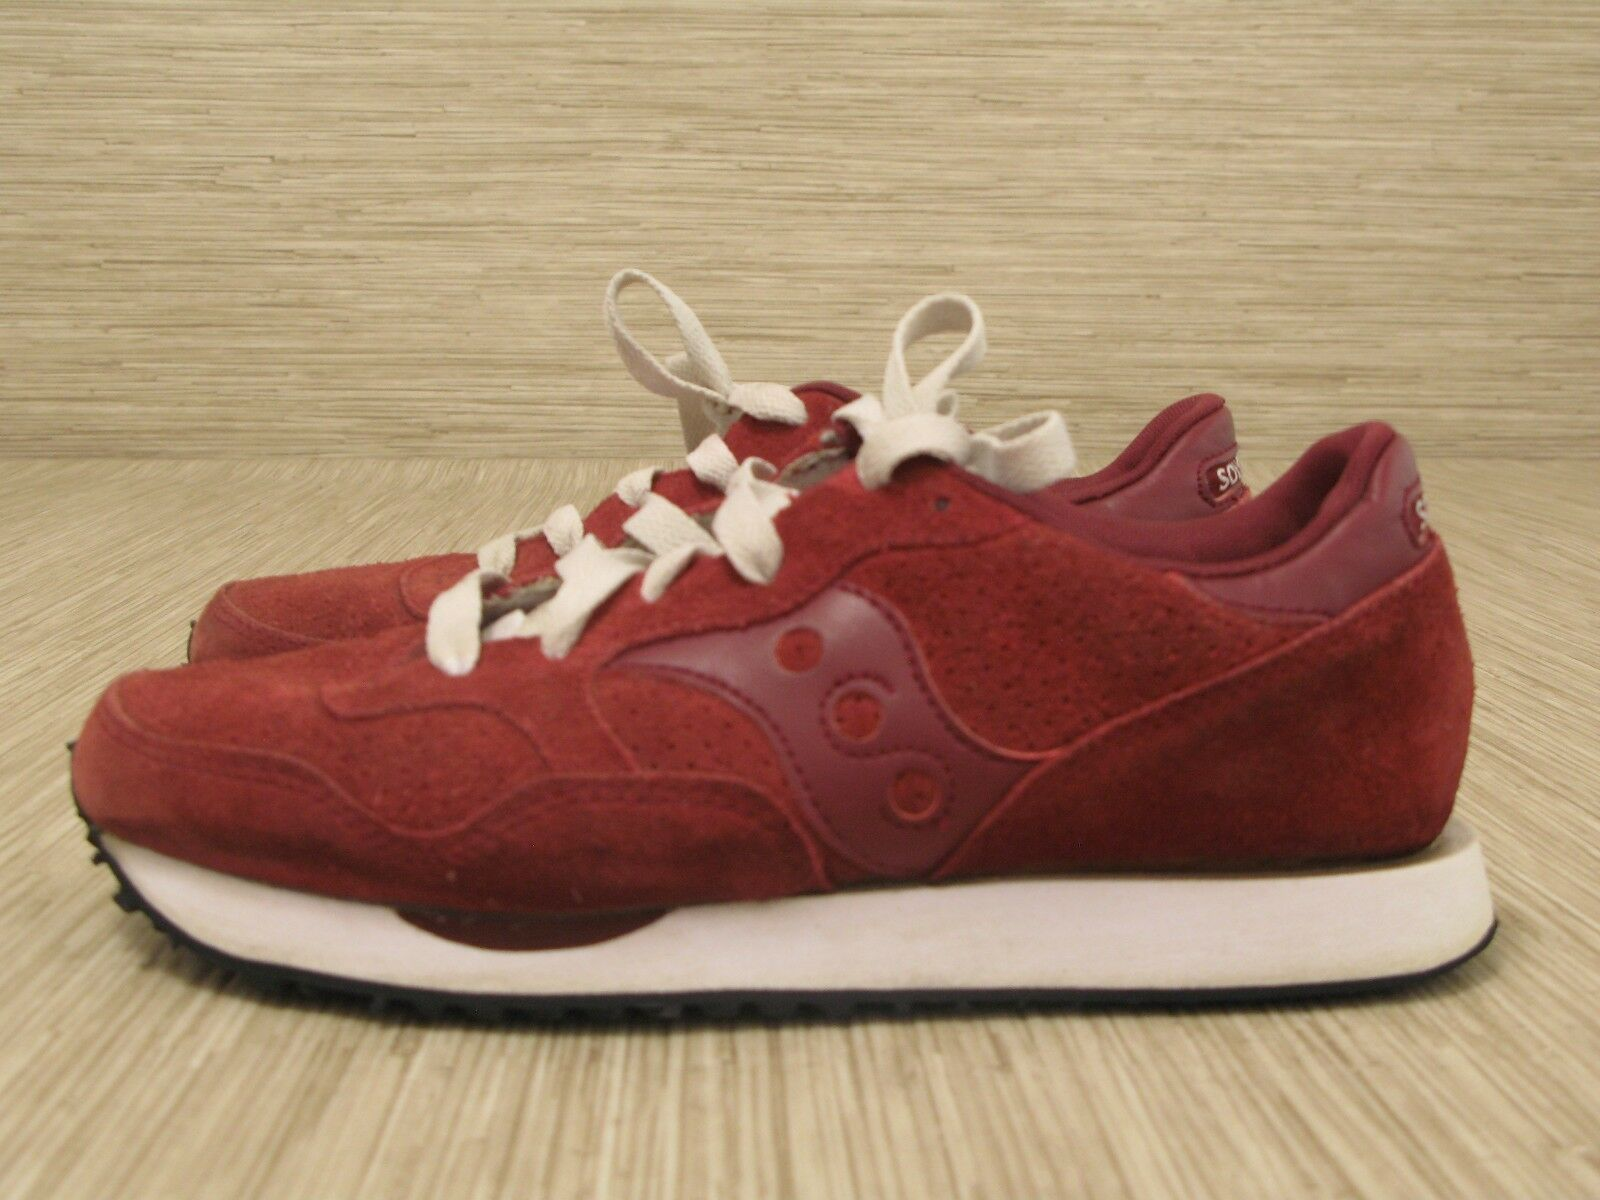 Saucony & Madewell DXN Trainer Red Suede Shoes Women's Size US 7 Running